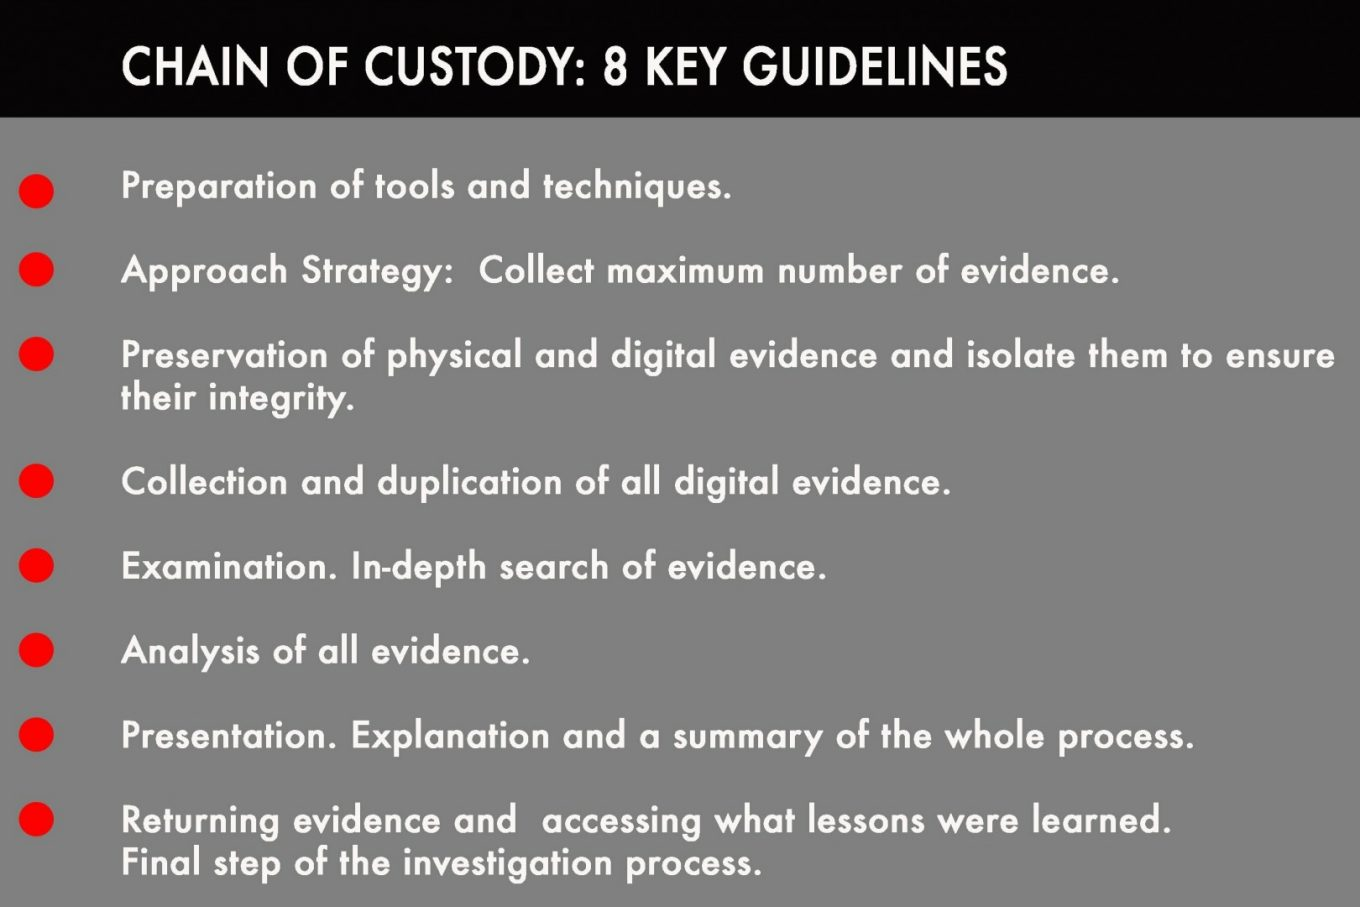 Chain of custody. Its 8 key guidelines Intelligenthq